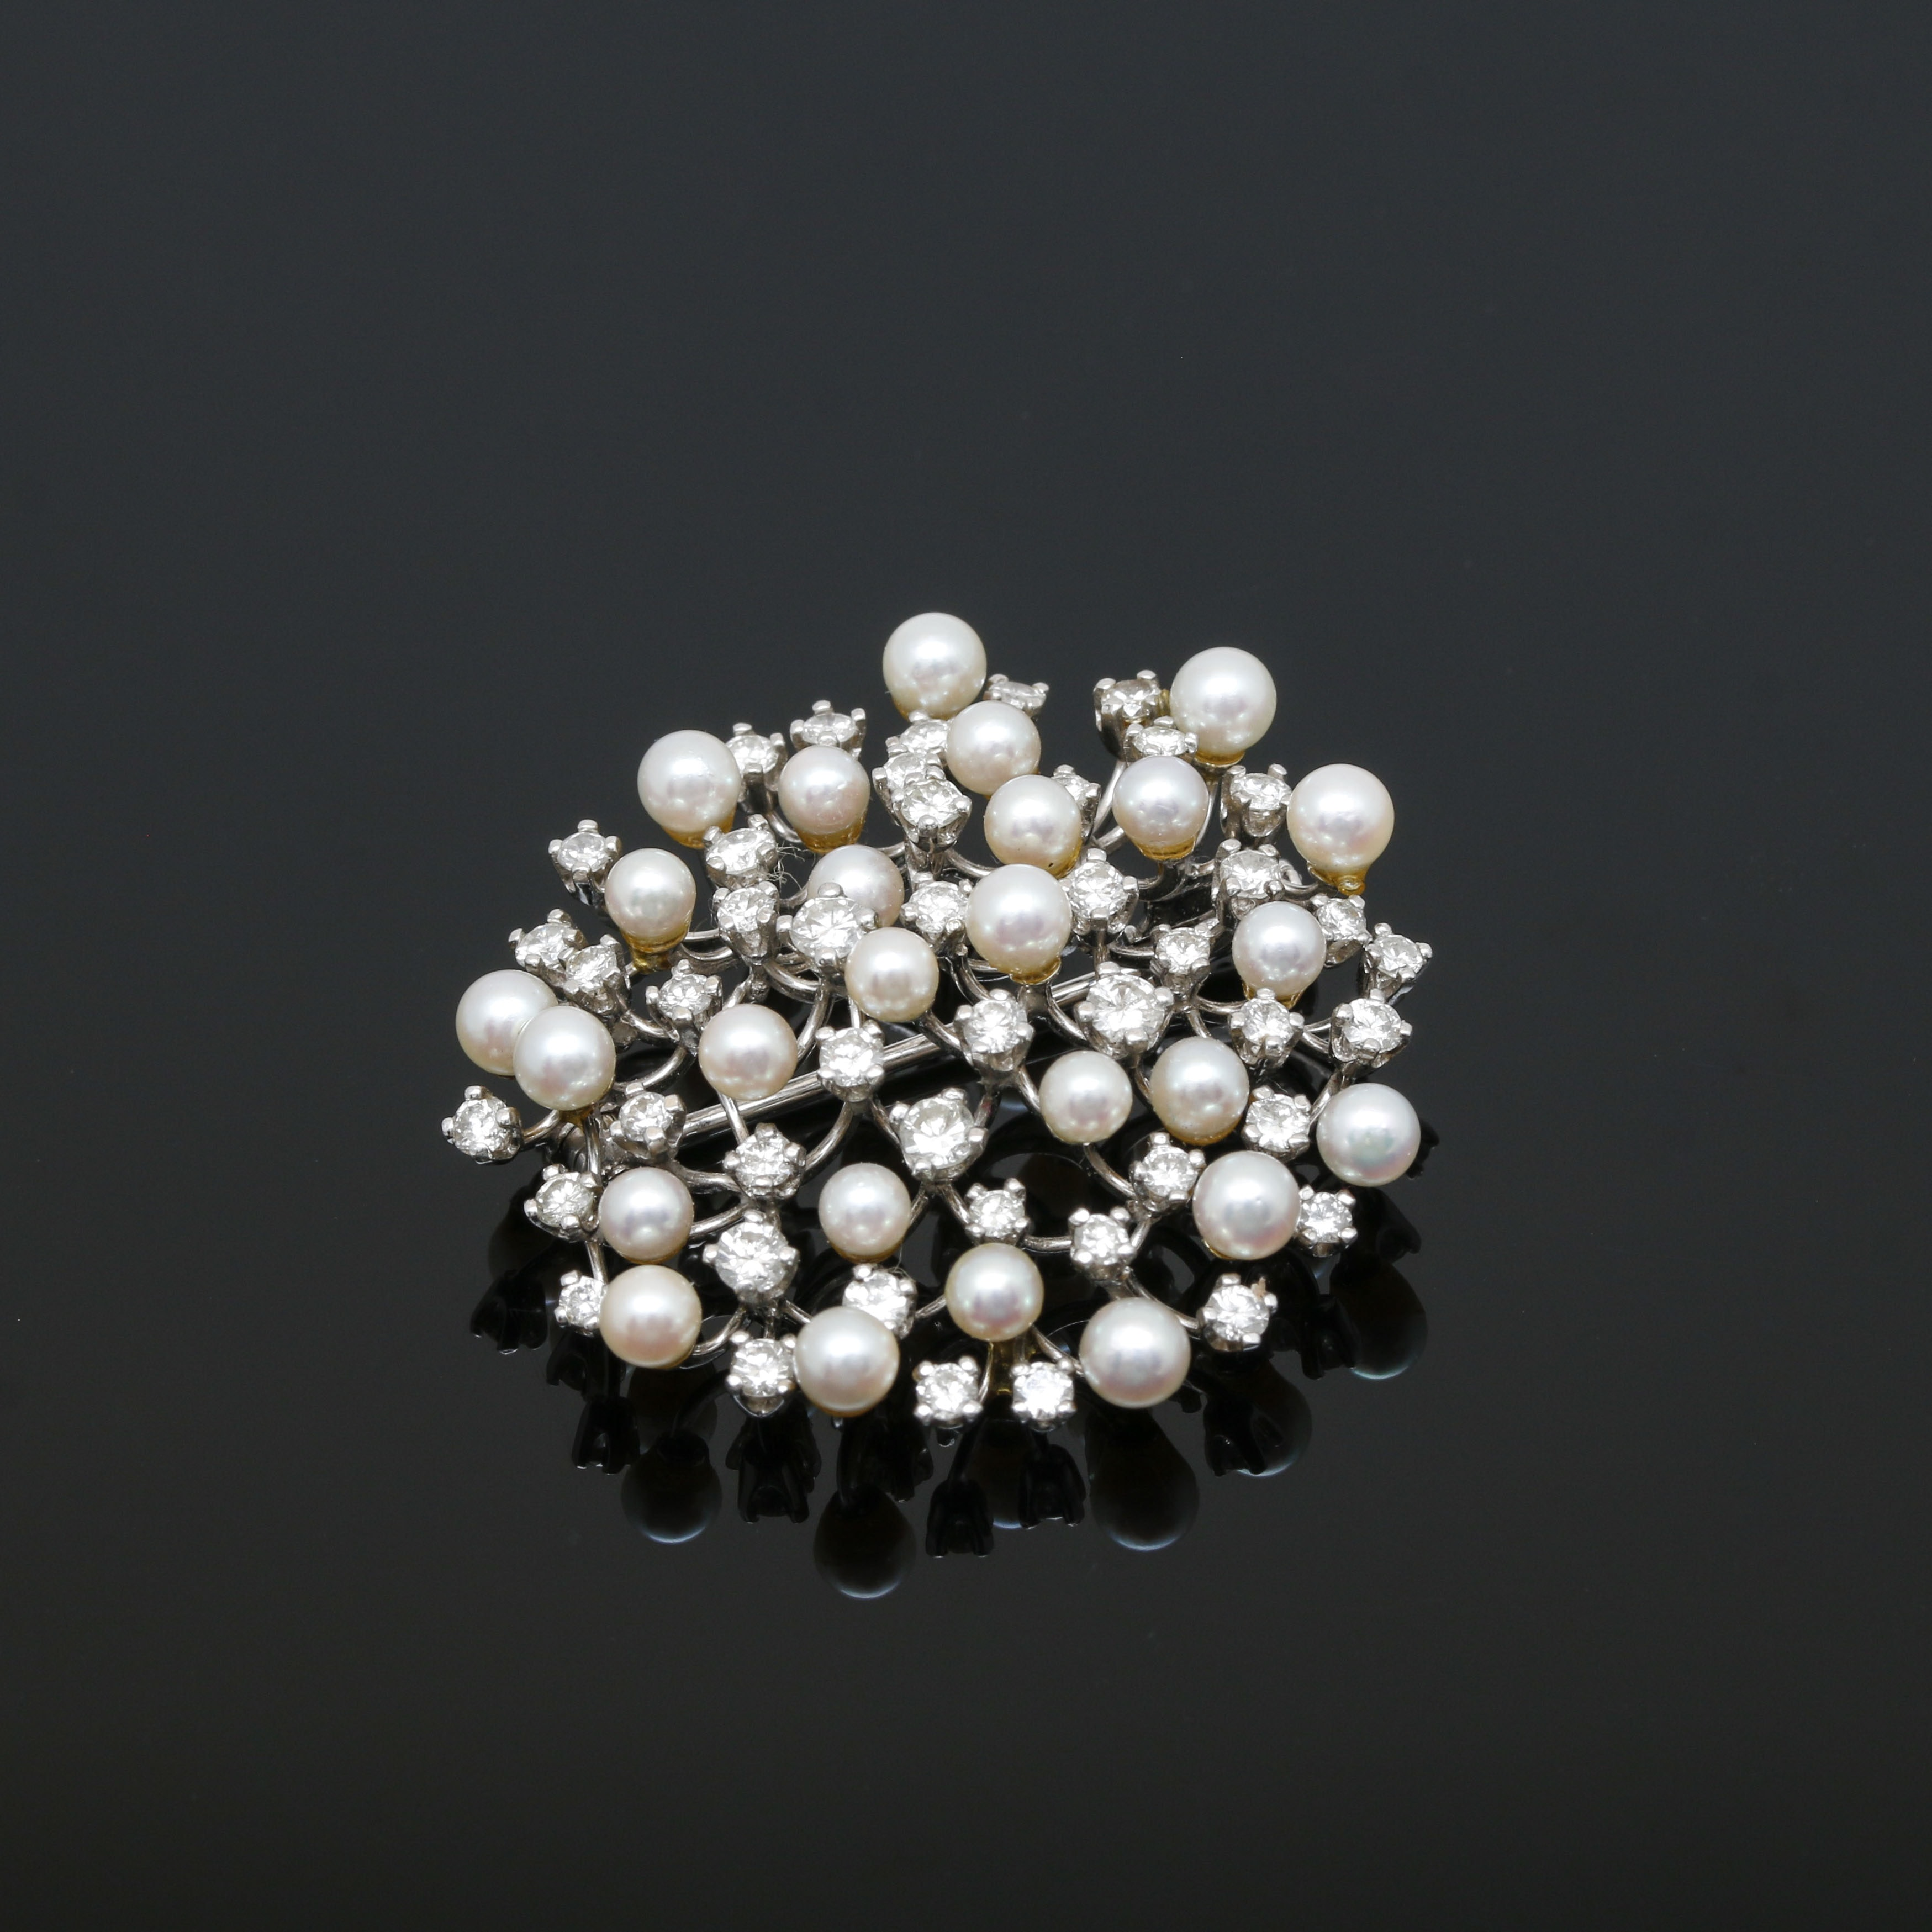 18K White Gold Cultured Pearl and 1.96 CTW Diamond Brooch